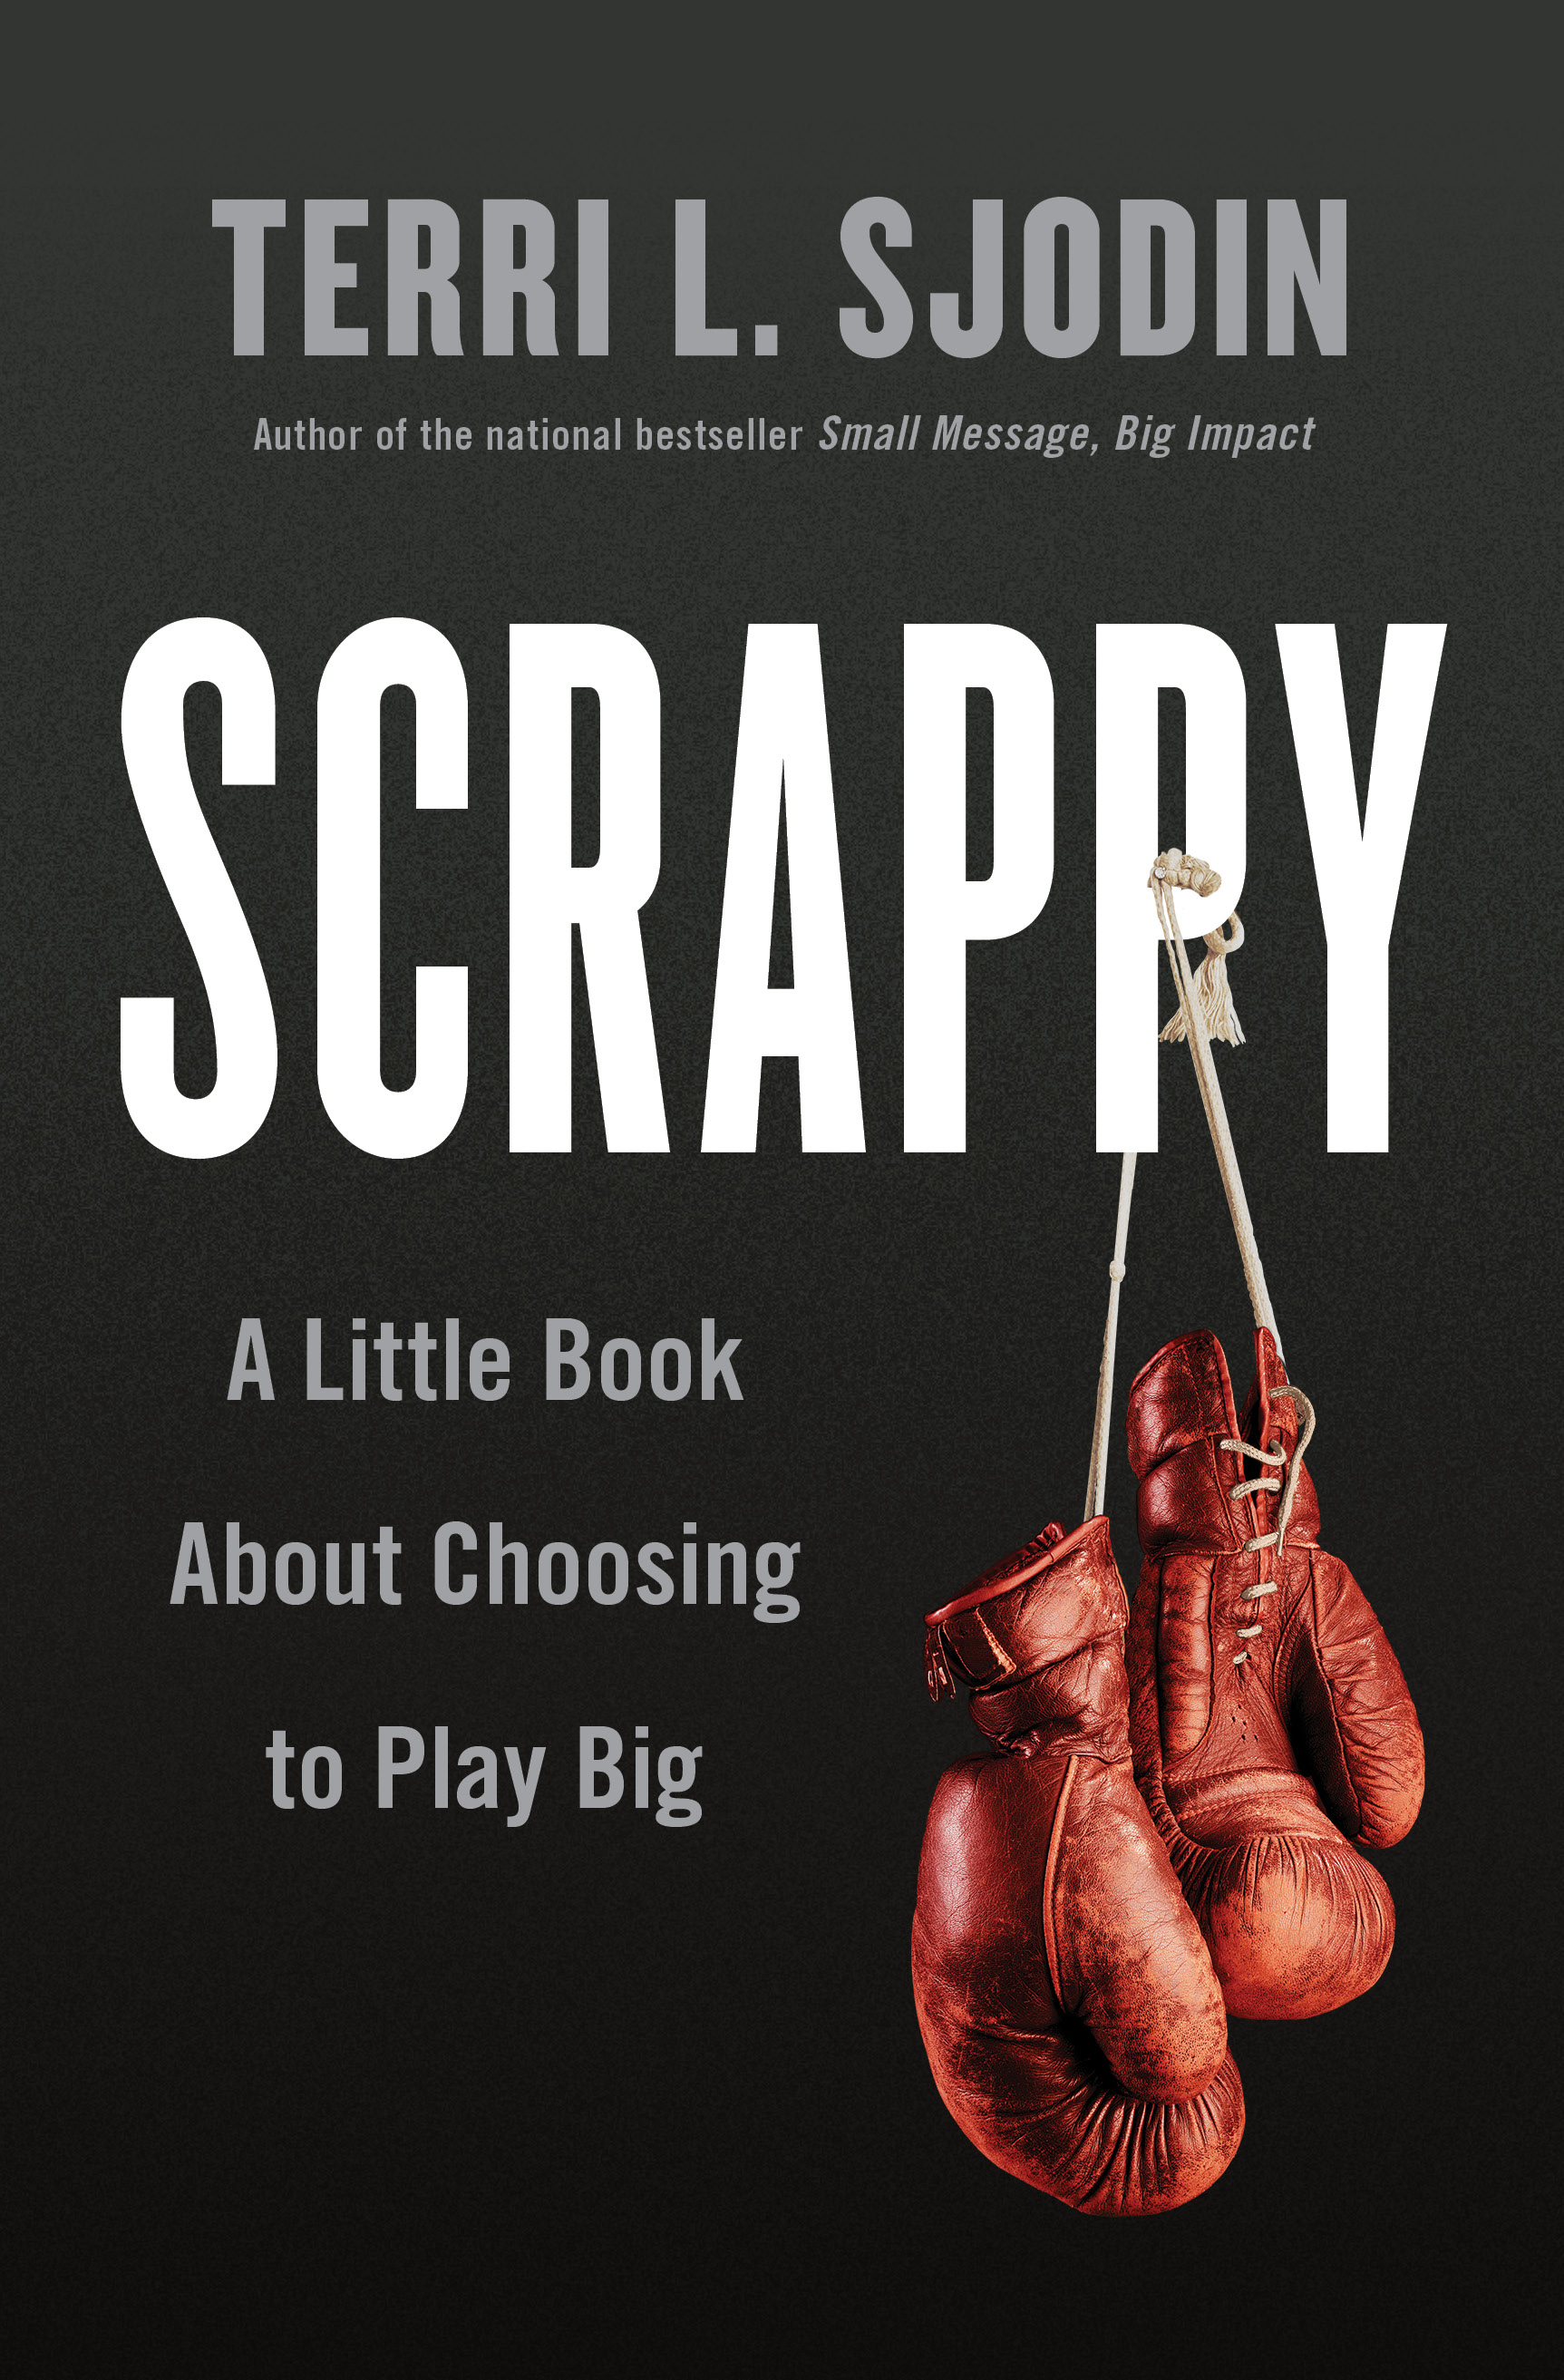 Scrappy - Penguin Random House Portfolio Book Cover